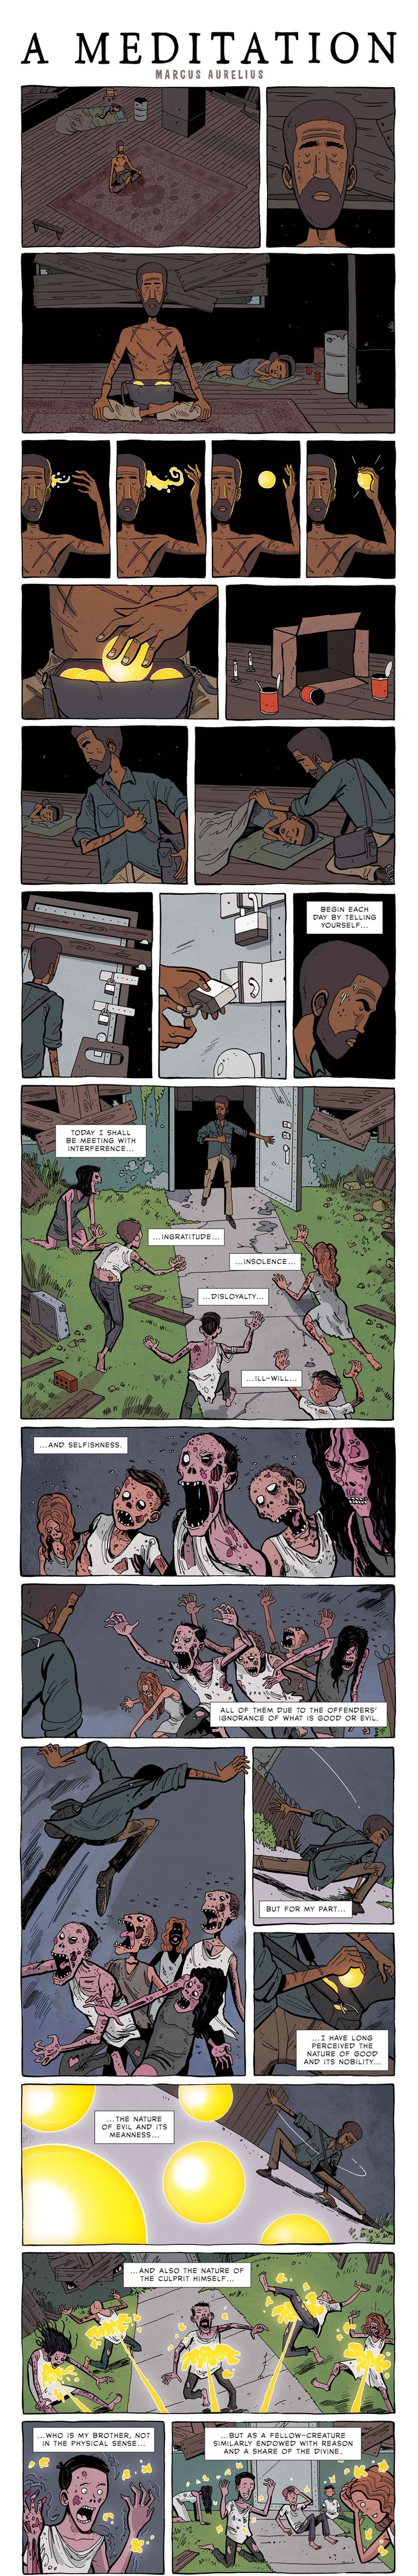 ZEN PENCILS » 176. MARCUS AURELIUS: A meditation - follow link for discussion on its origin.